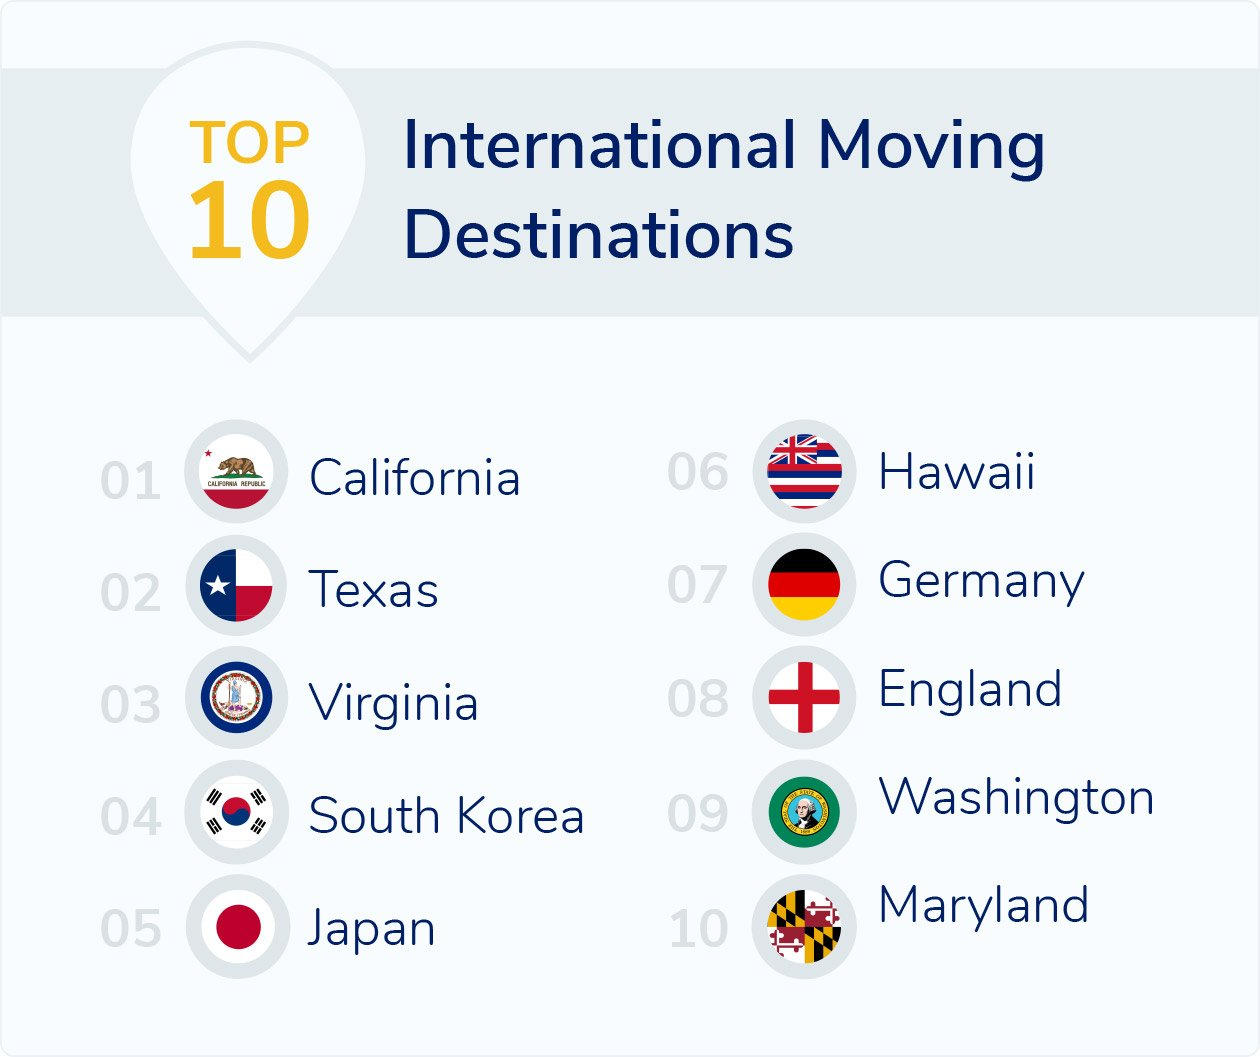 Top International Moving Destinations